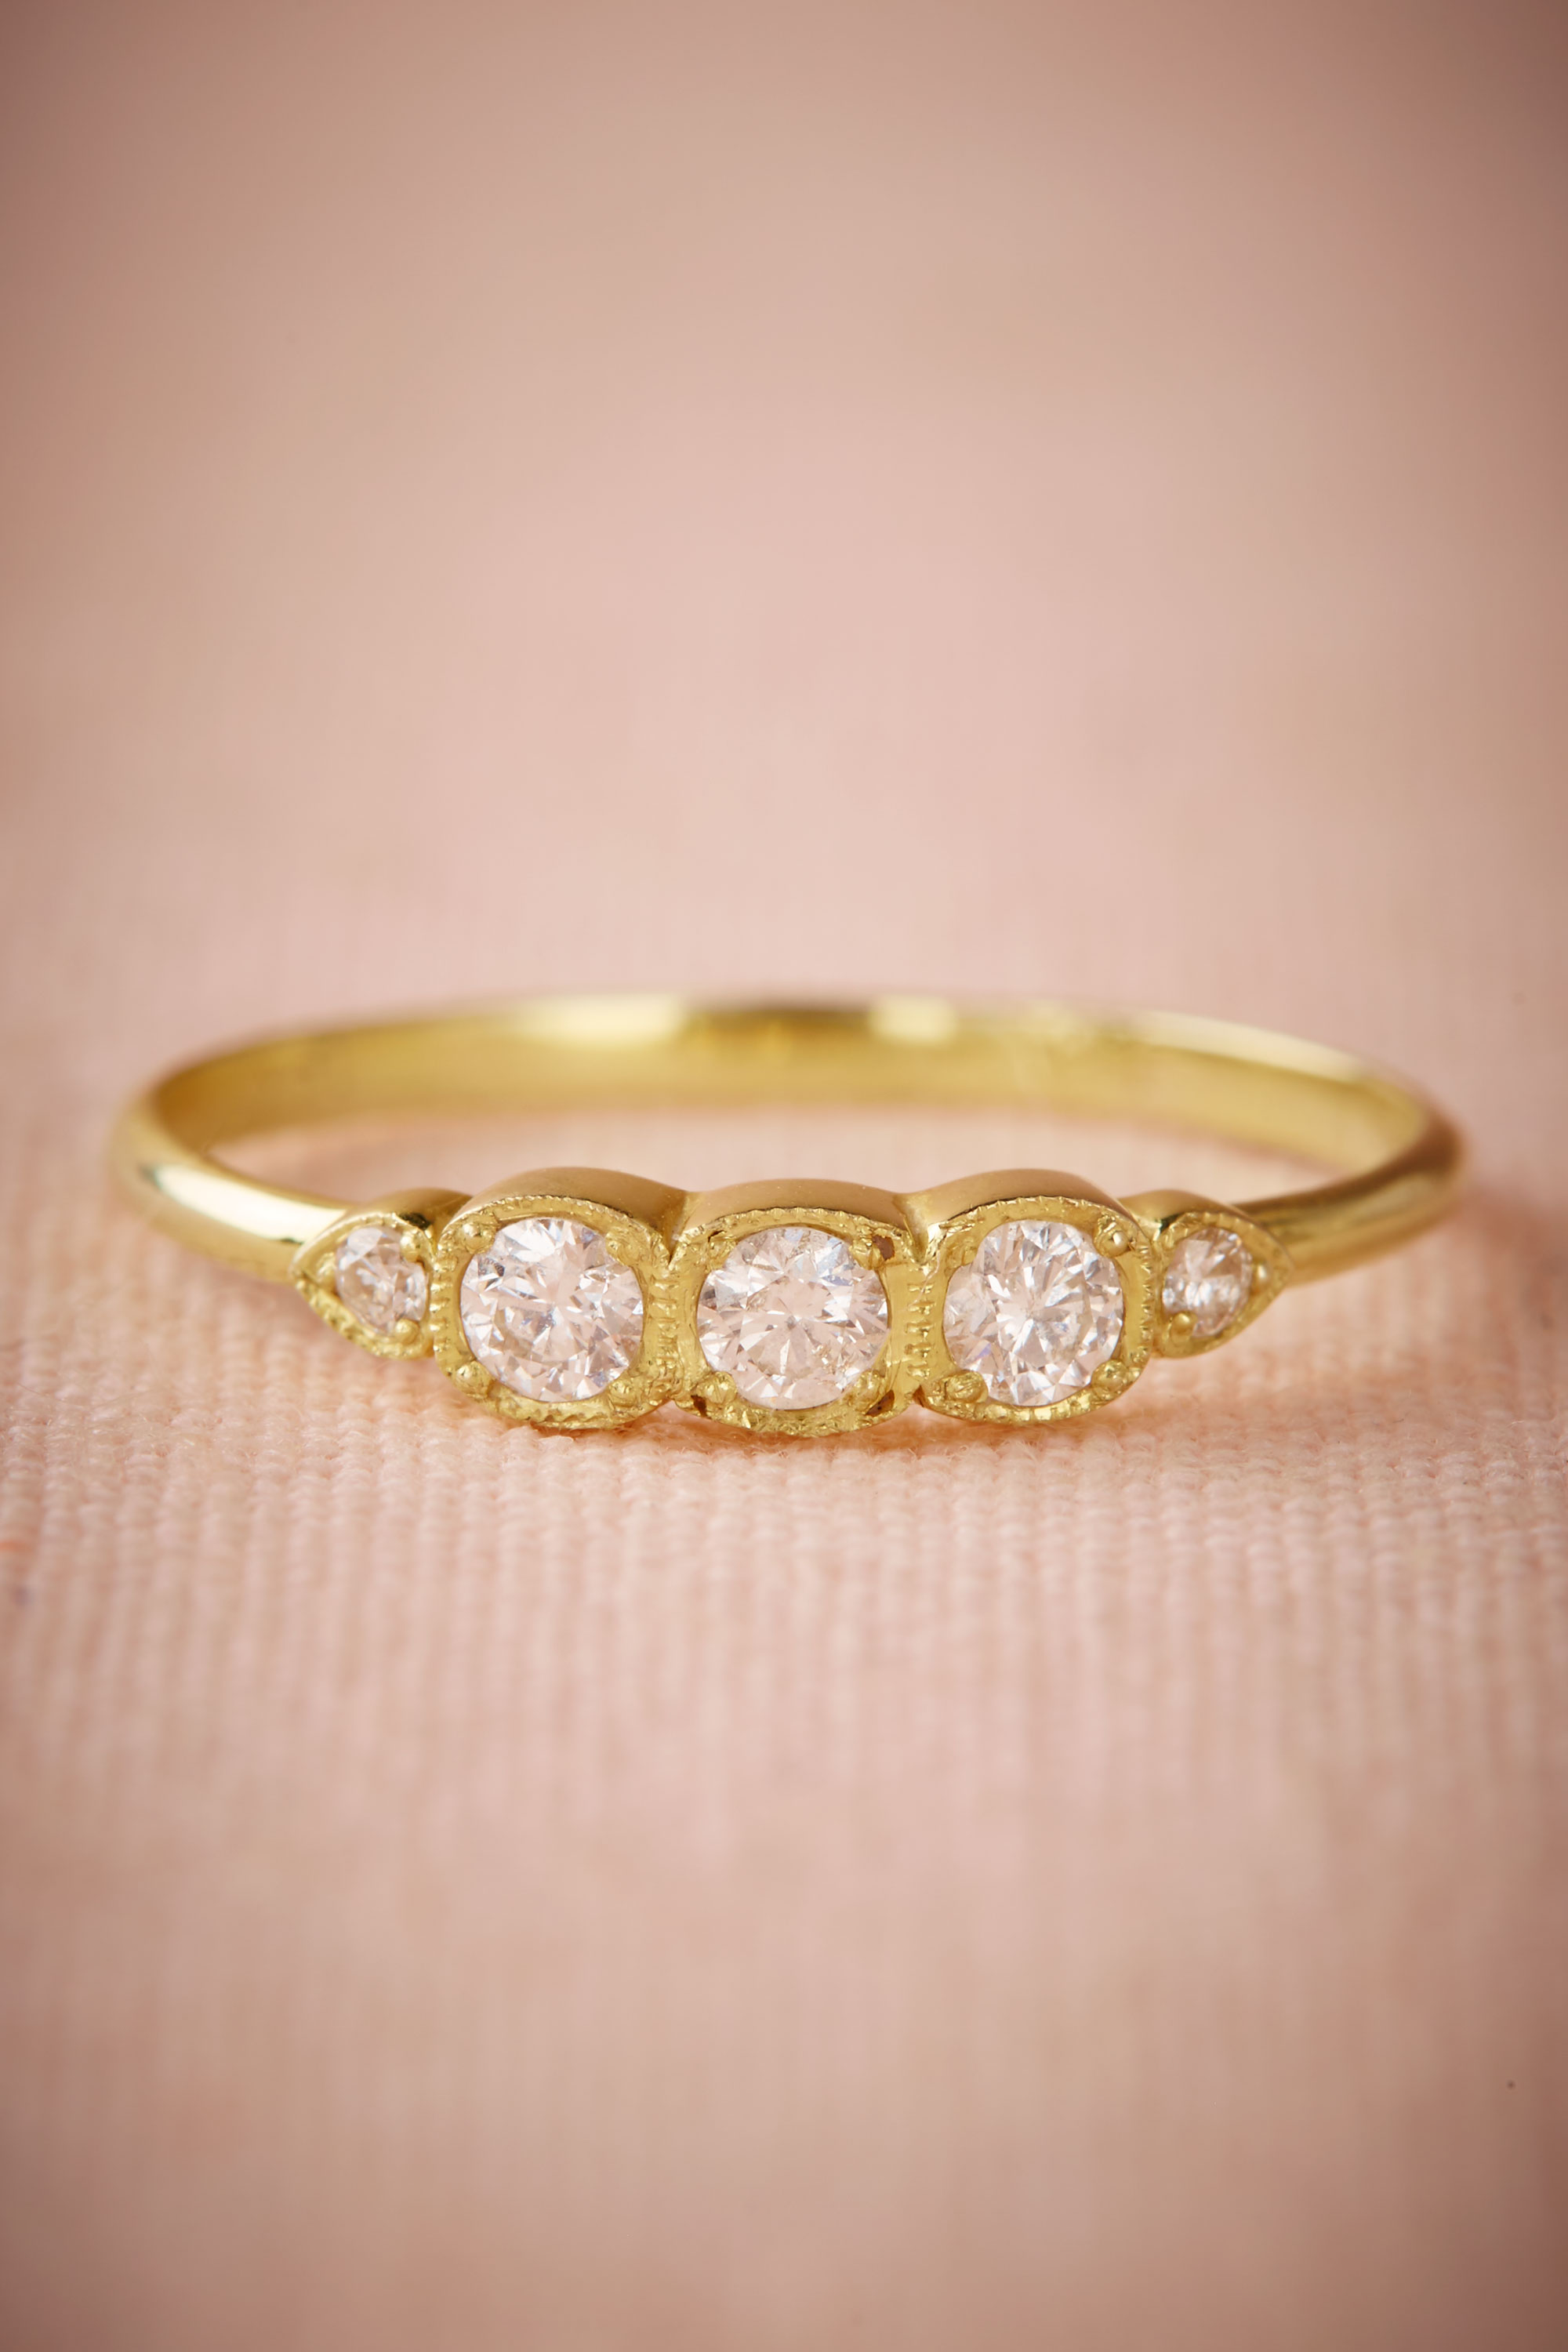 BHLDN Just Launched a Beautiful Collection of Engagement Rings and ...